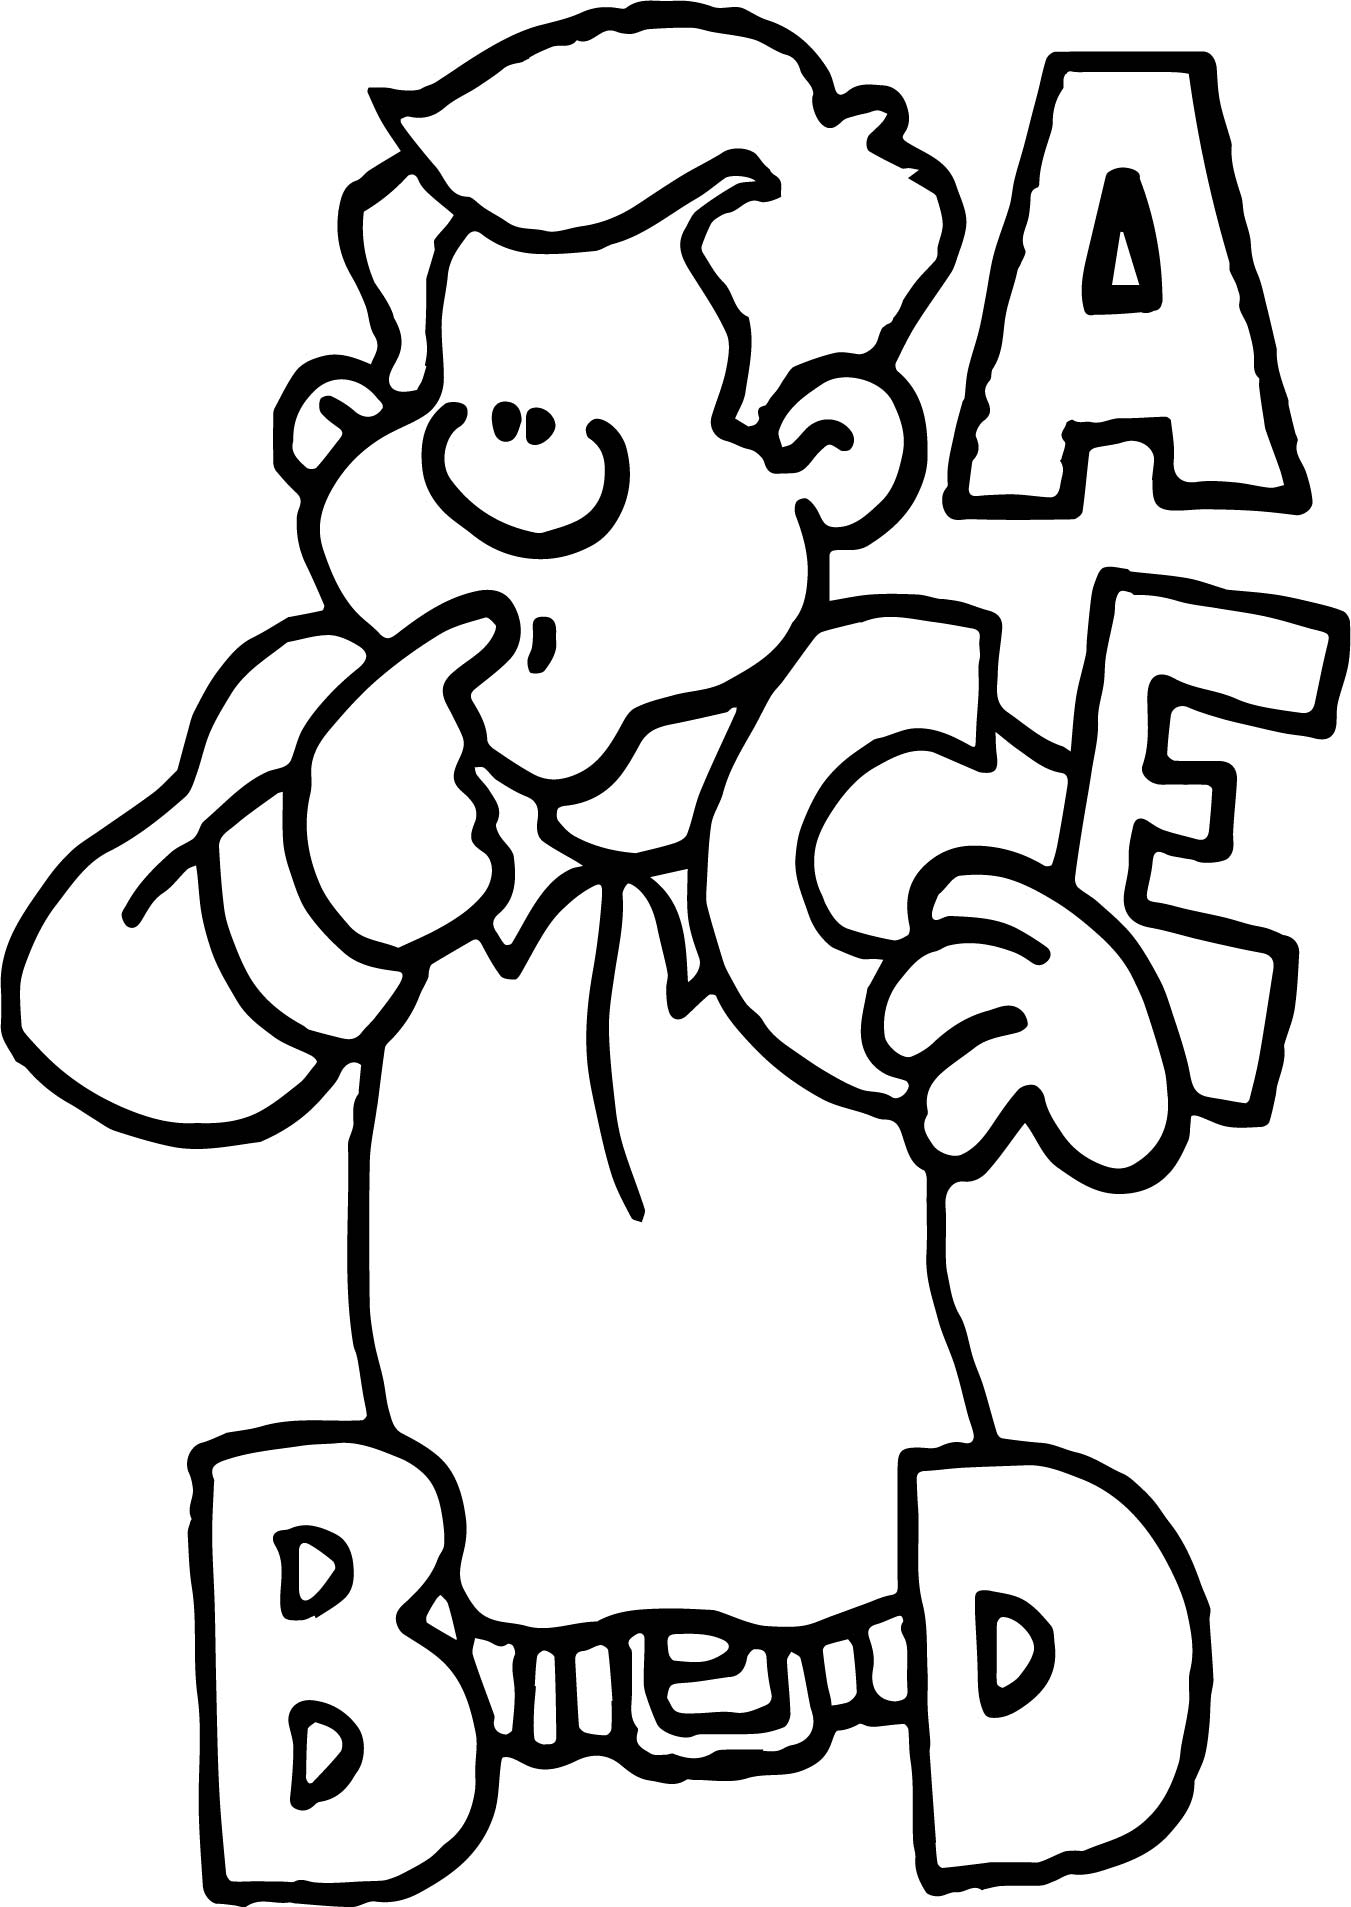 English Alphabet Coloring Pages : English coloring pages letters classic